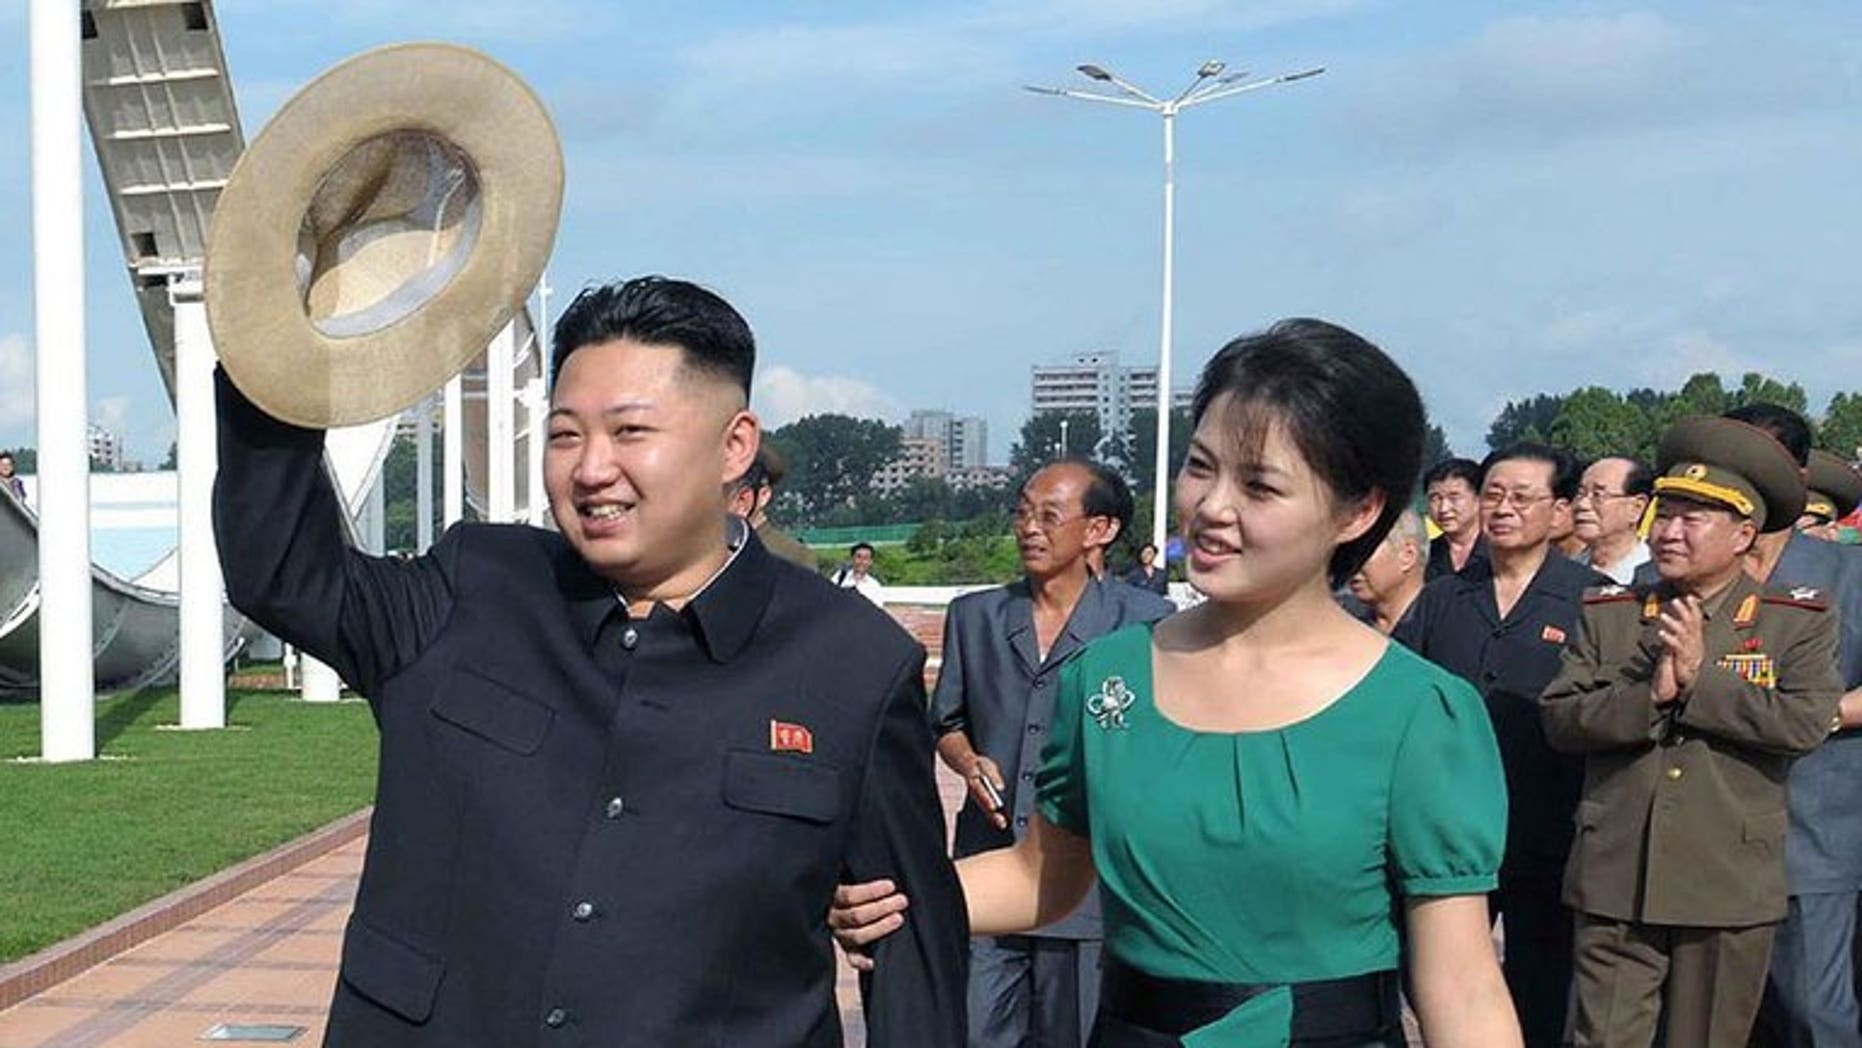 This picture released by North Korea's official Korean Central News Agency (KCNA) via the Korea News Service (KNS) shows North Korean leader Kim Jong-Un and his wife Ri Sol-Ju visiting the Rungna People's Pleasure Ground in Pyongyang, on July 26, 2012. North Korea has angrily denied reports that it had executed several state performers to cover up the past of its first lady.